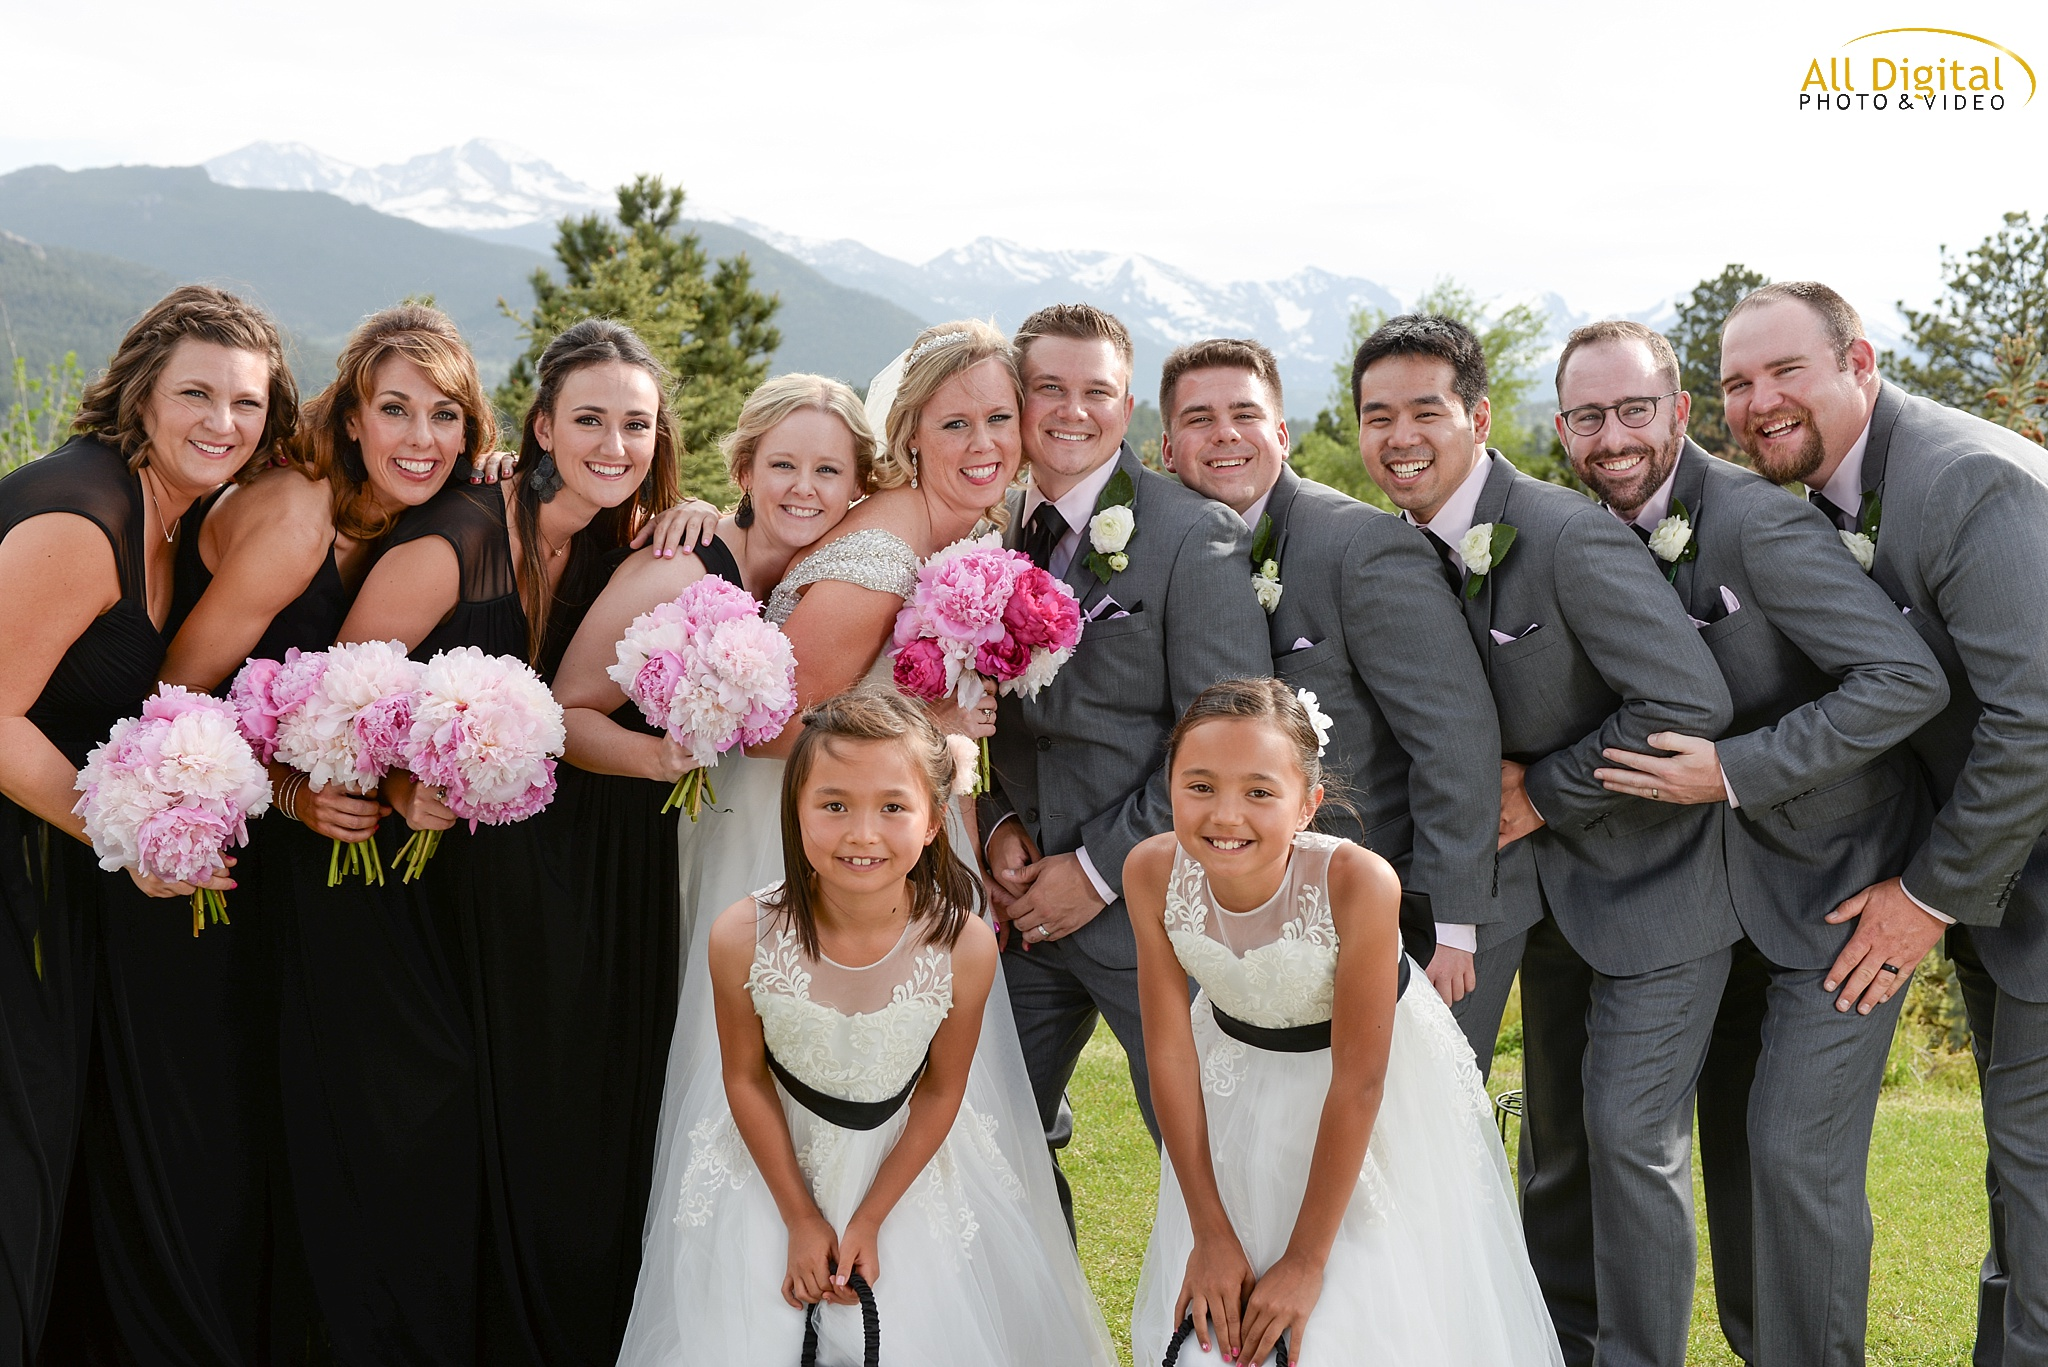 Bridal Party portraits at the Stanley Hotel in Estes Park, Colorado